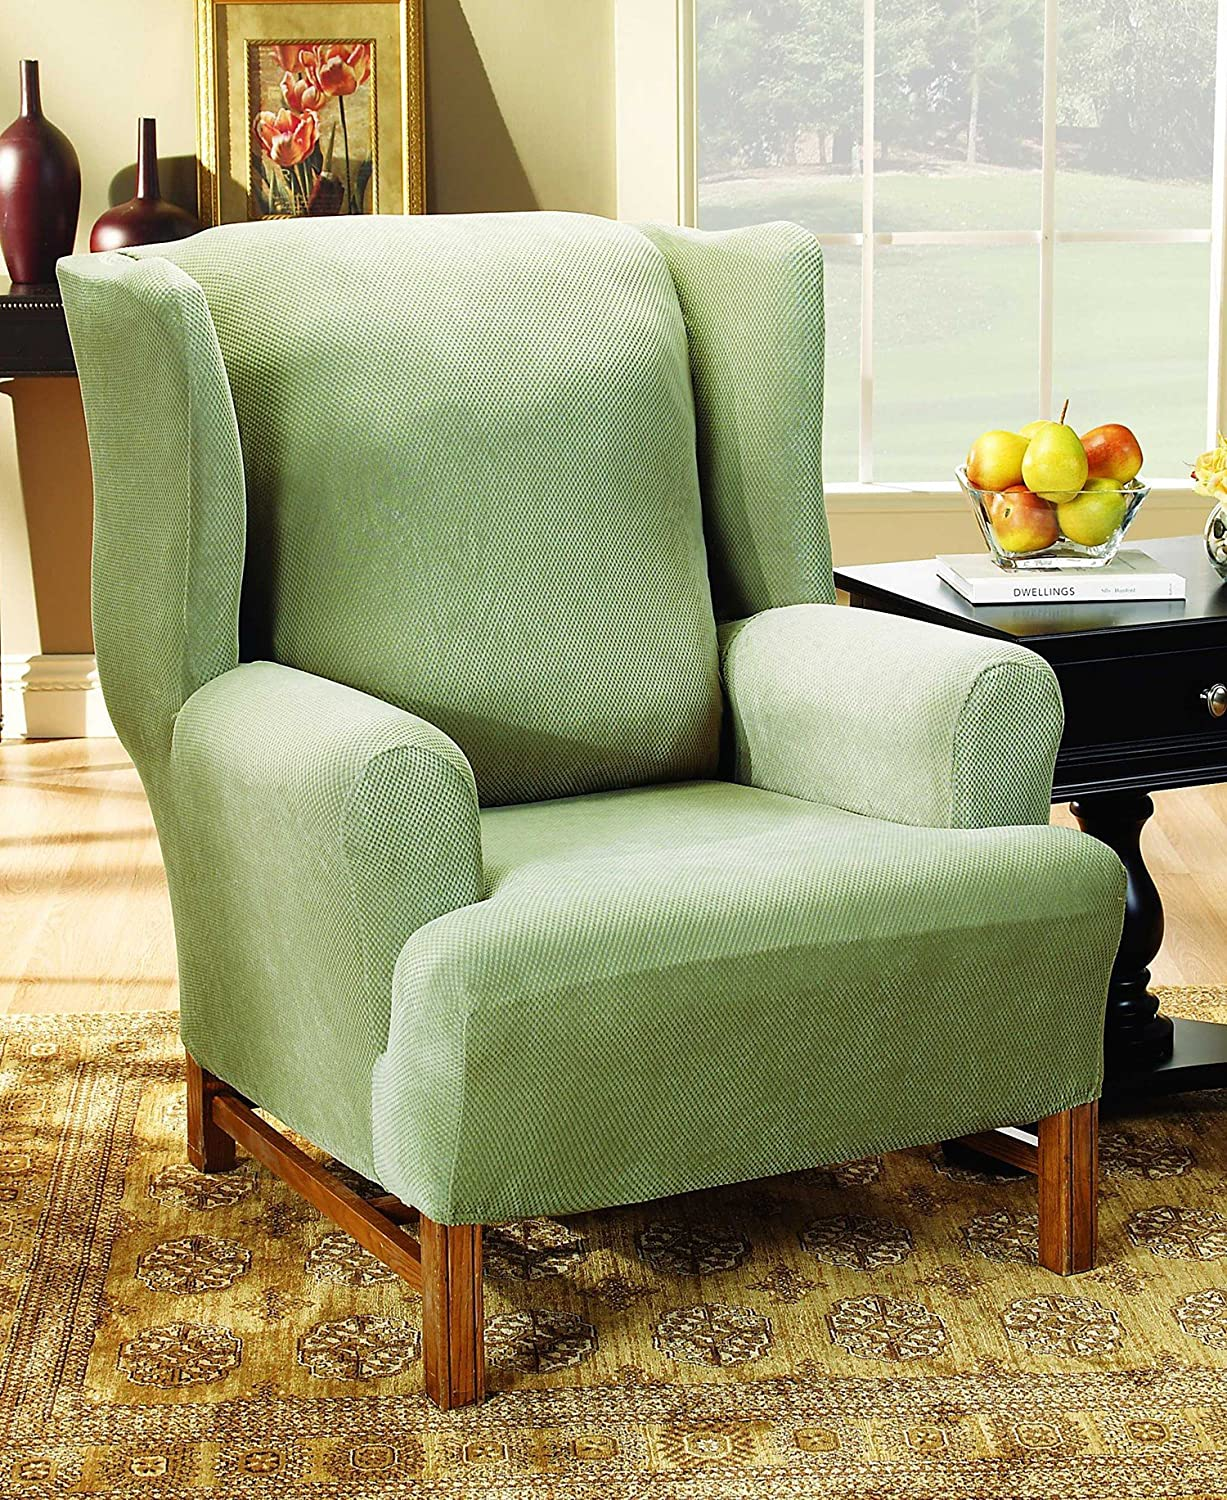 amazoncom sure fit stretch pique knit wing chair slipcover antique sf34441 home u0026 kitchen